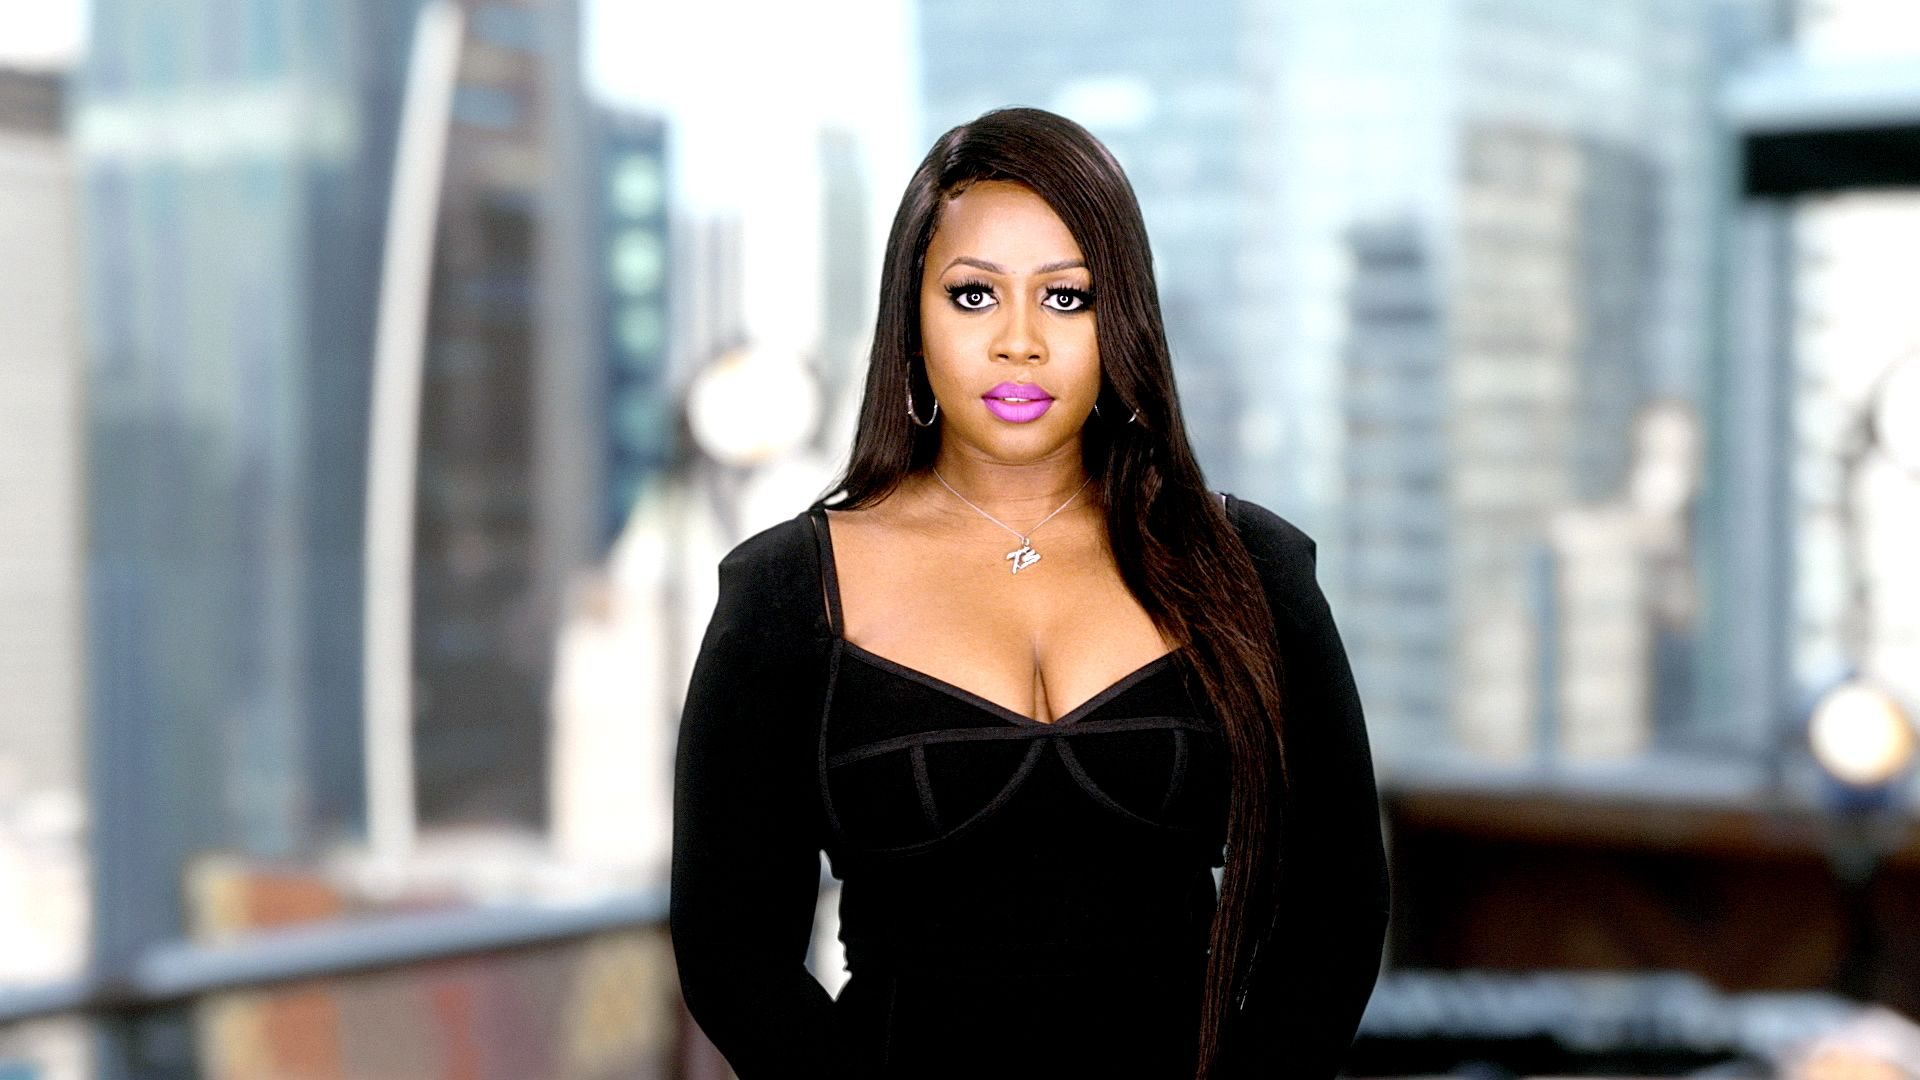 Yandy Love And Hip Hop New York